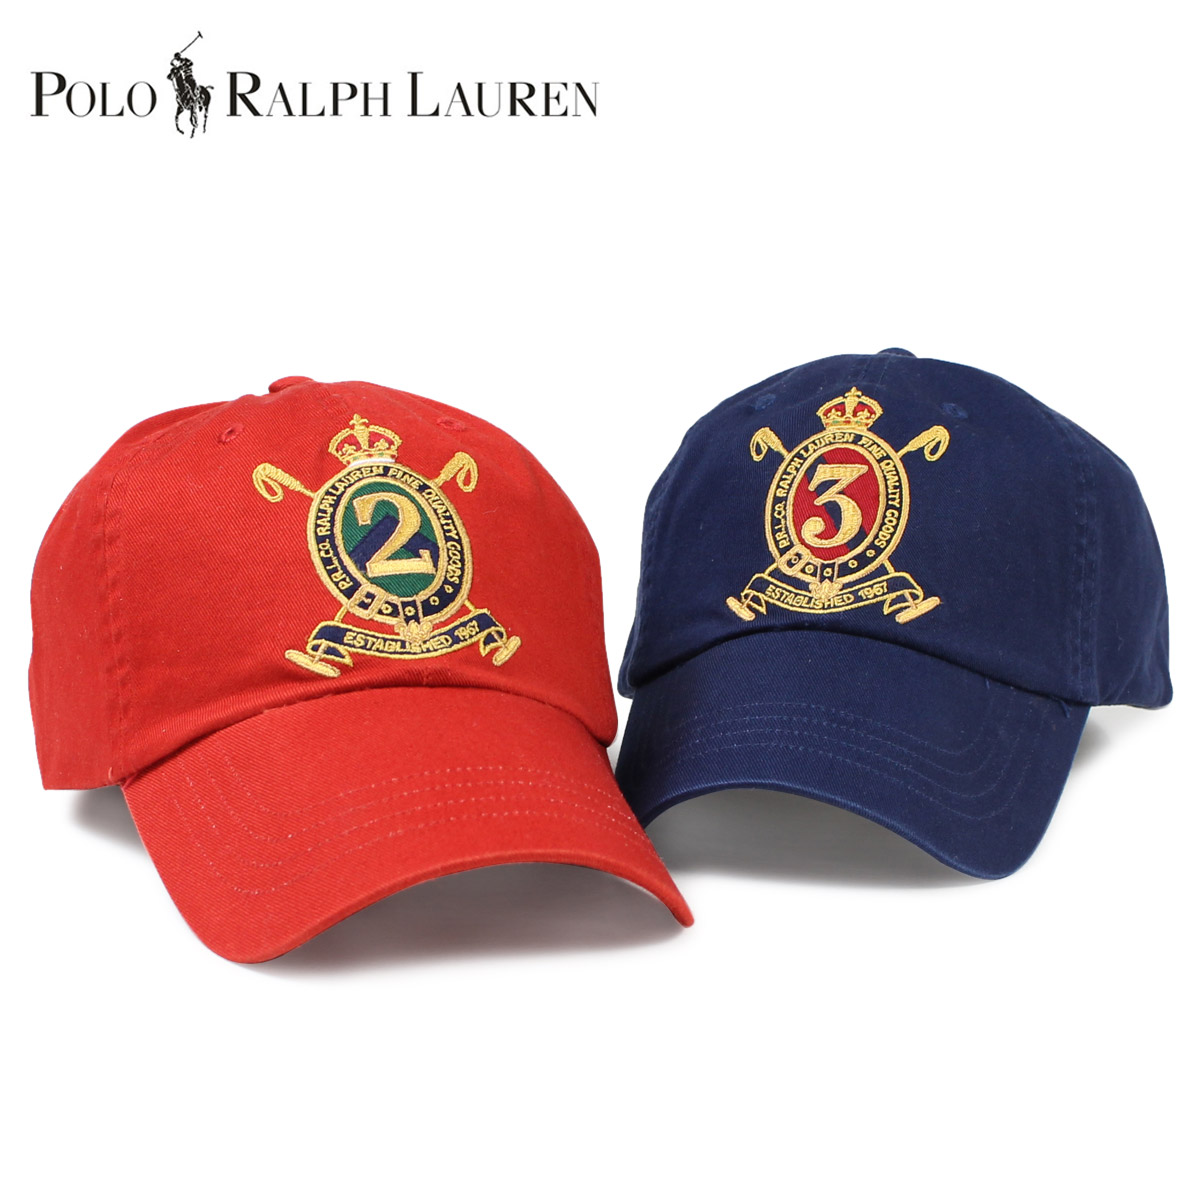 ralph lauren polo hats. Black Bedroom Furniture Sets. Home Design Ideas